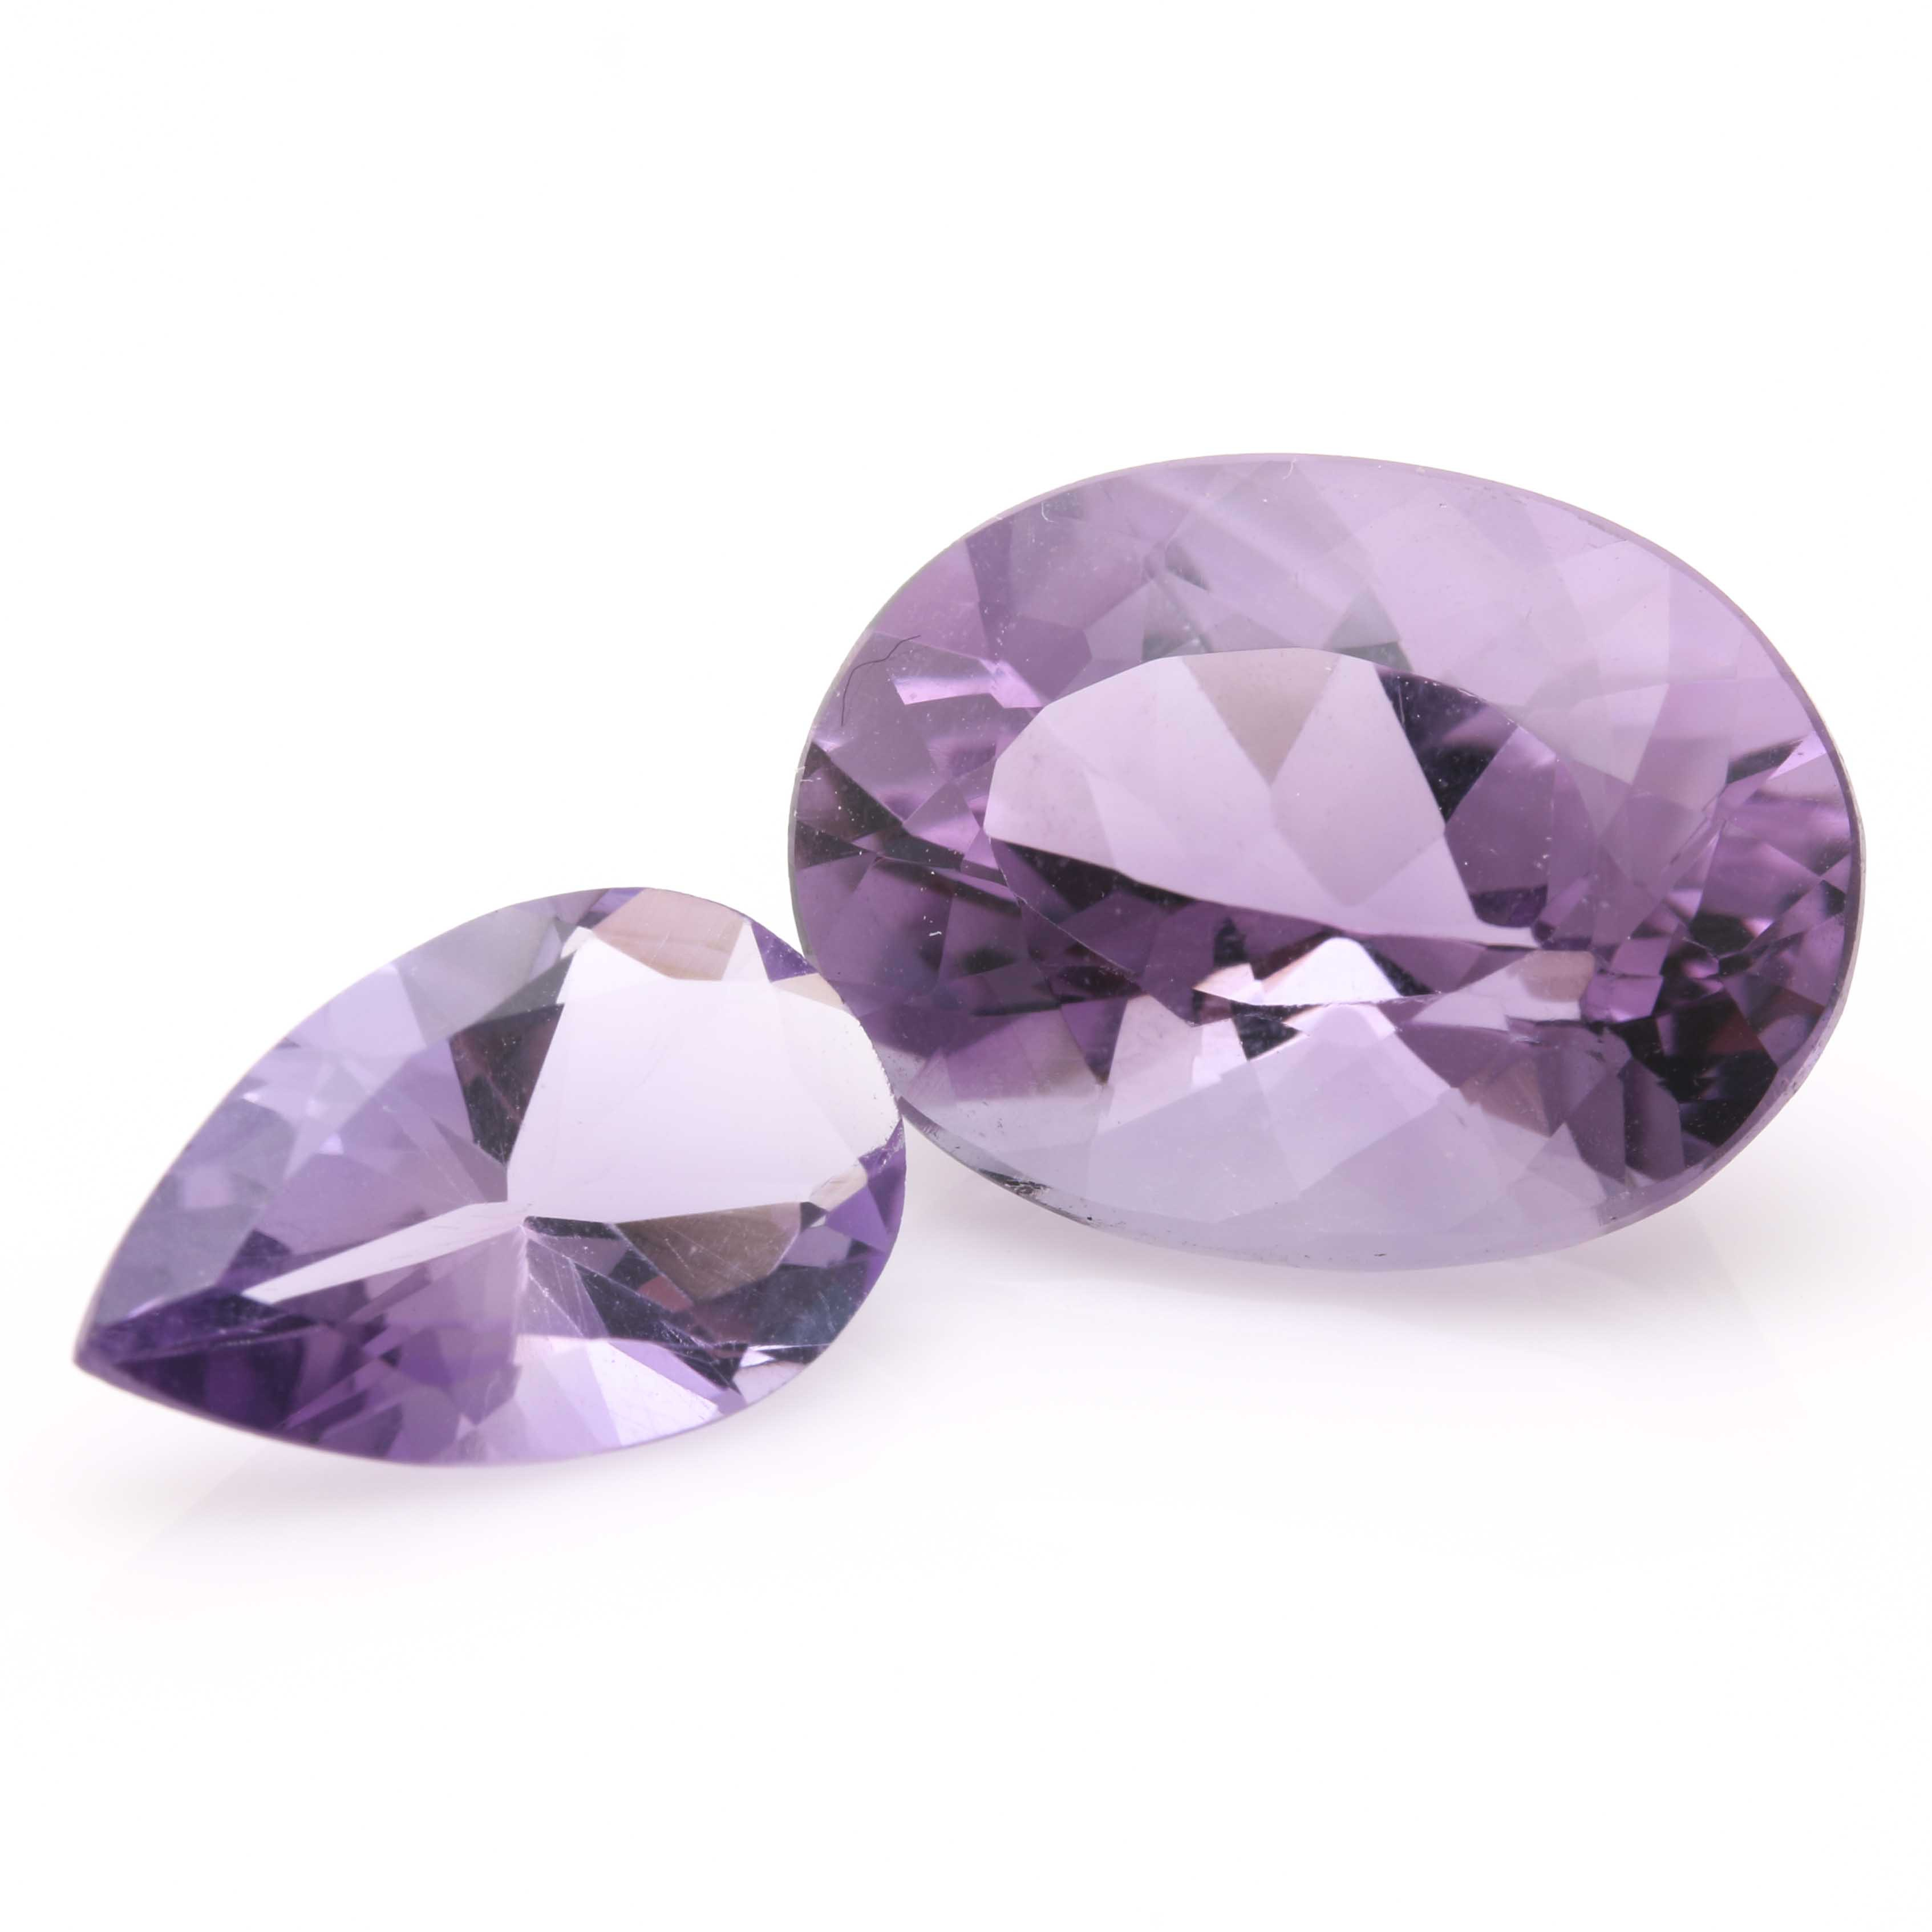 Two Loose Amethyst Stones